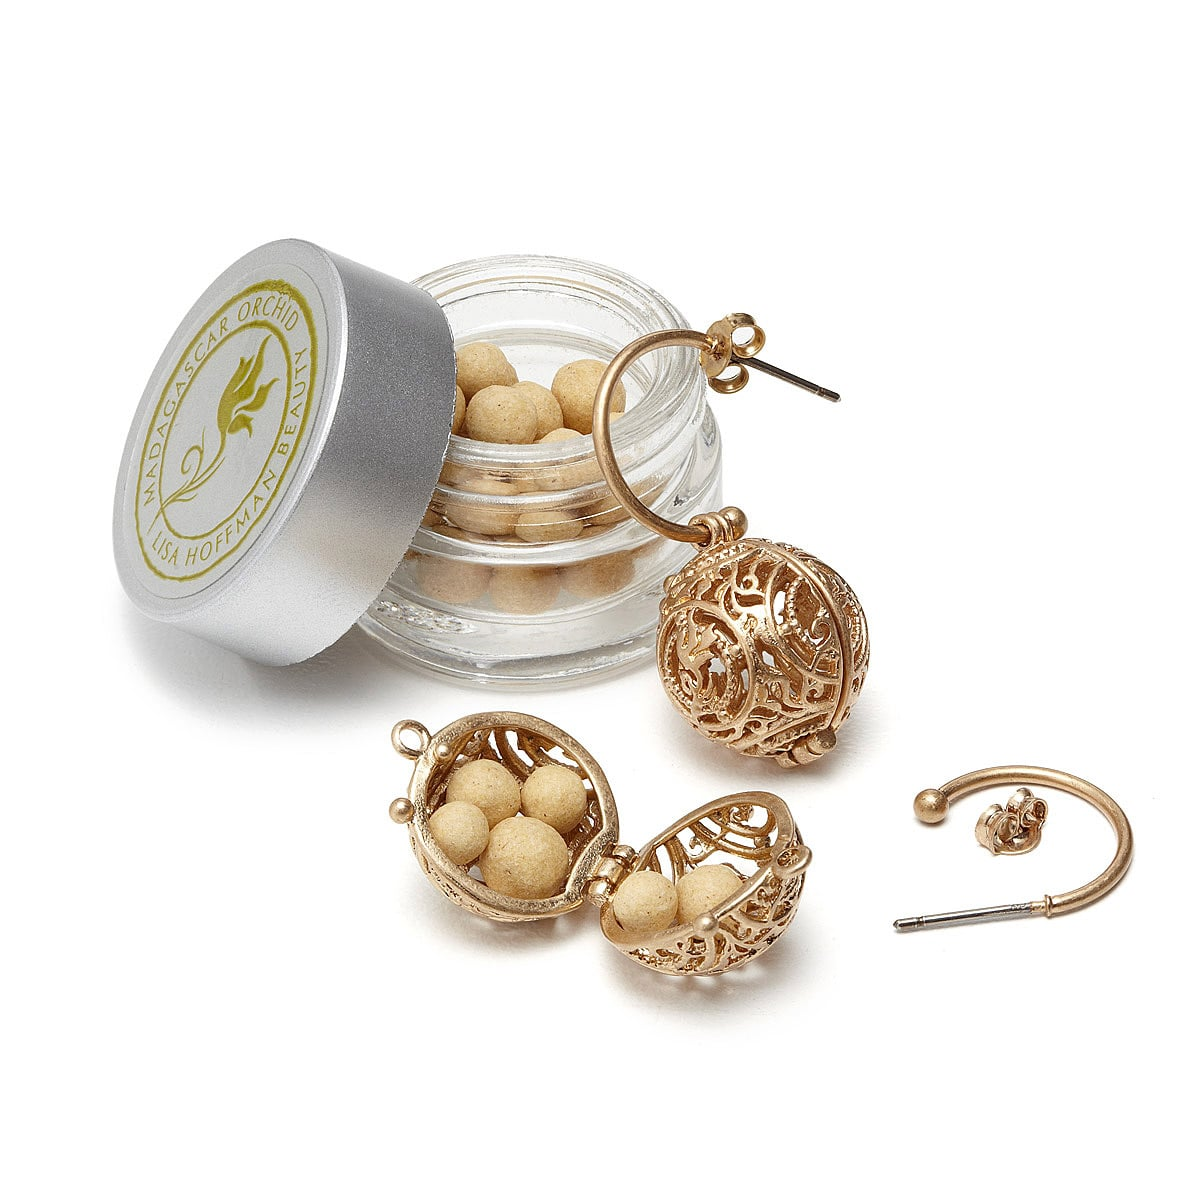 Lisa hoffman fragrance earrings you 39 re going to want to for How to make scented jewelry